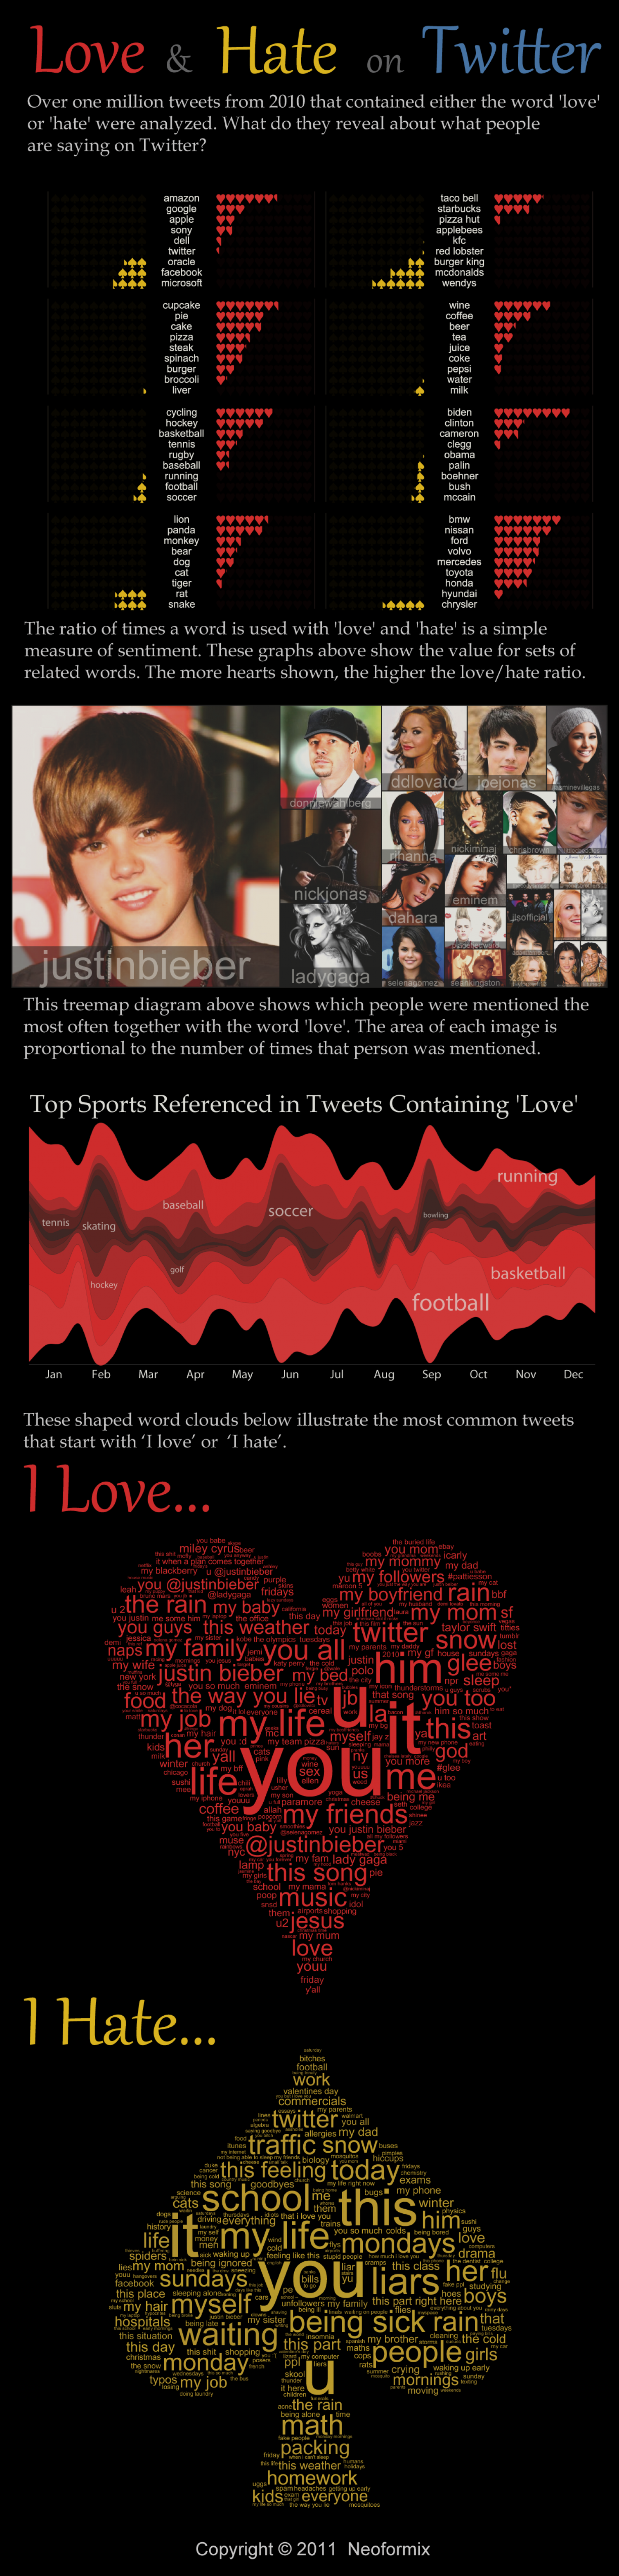 Love and Hate on Twitter Infographic